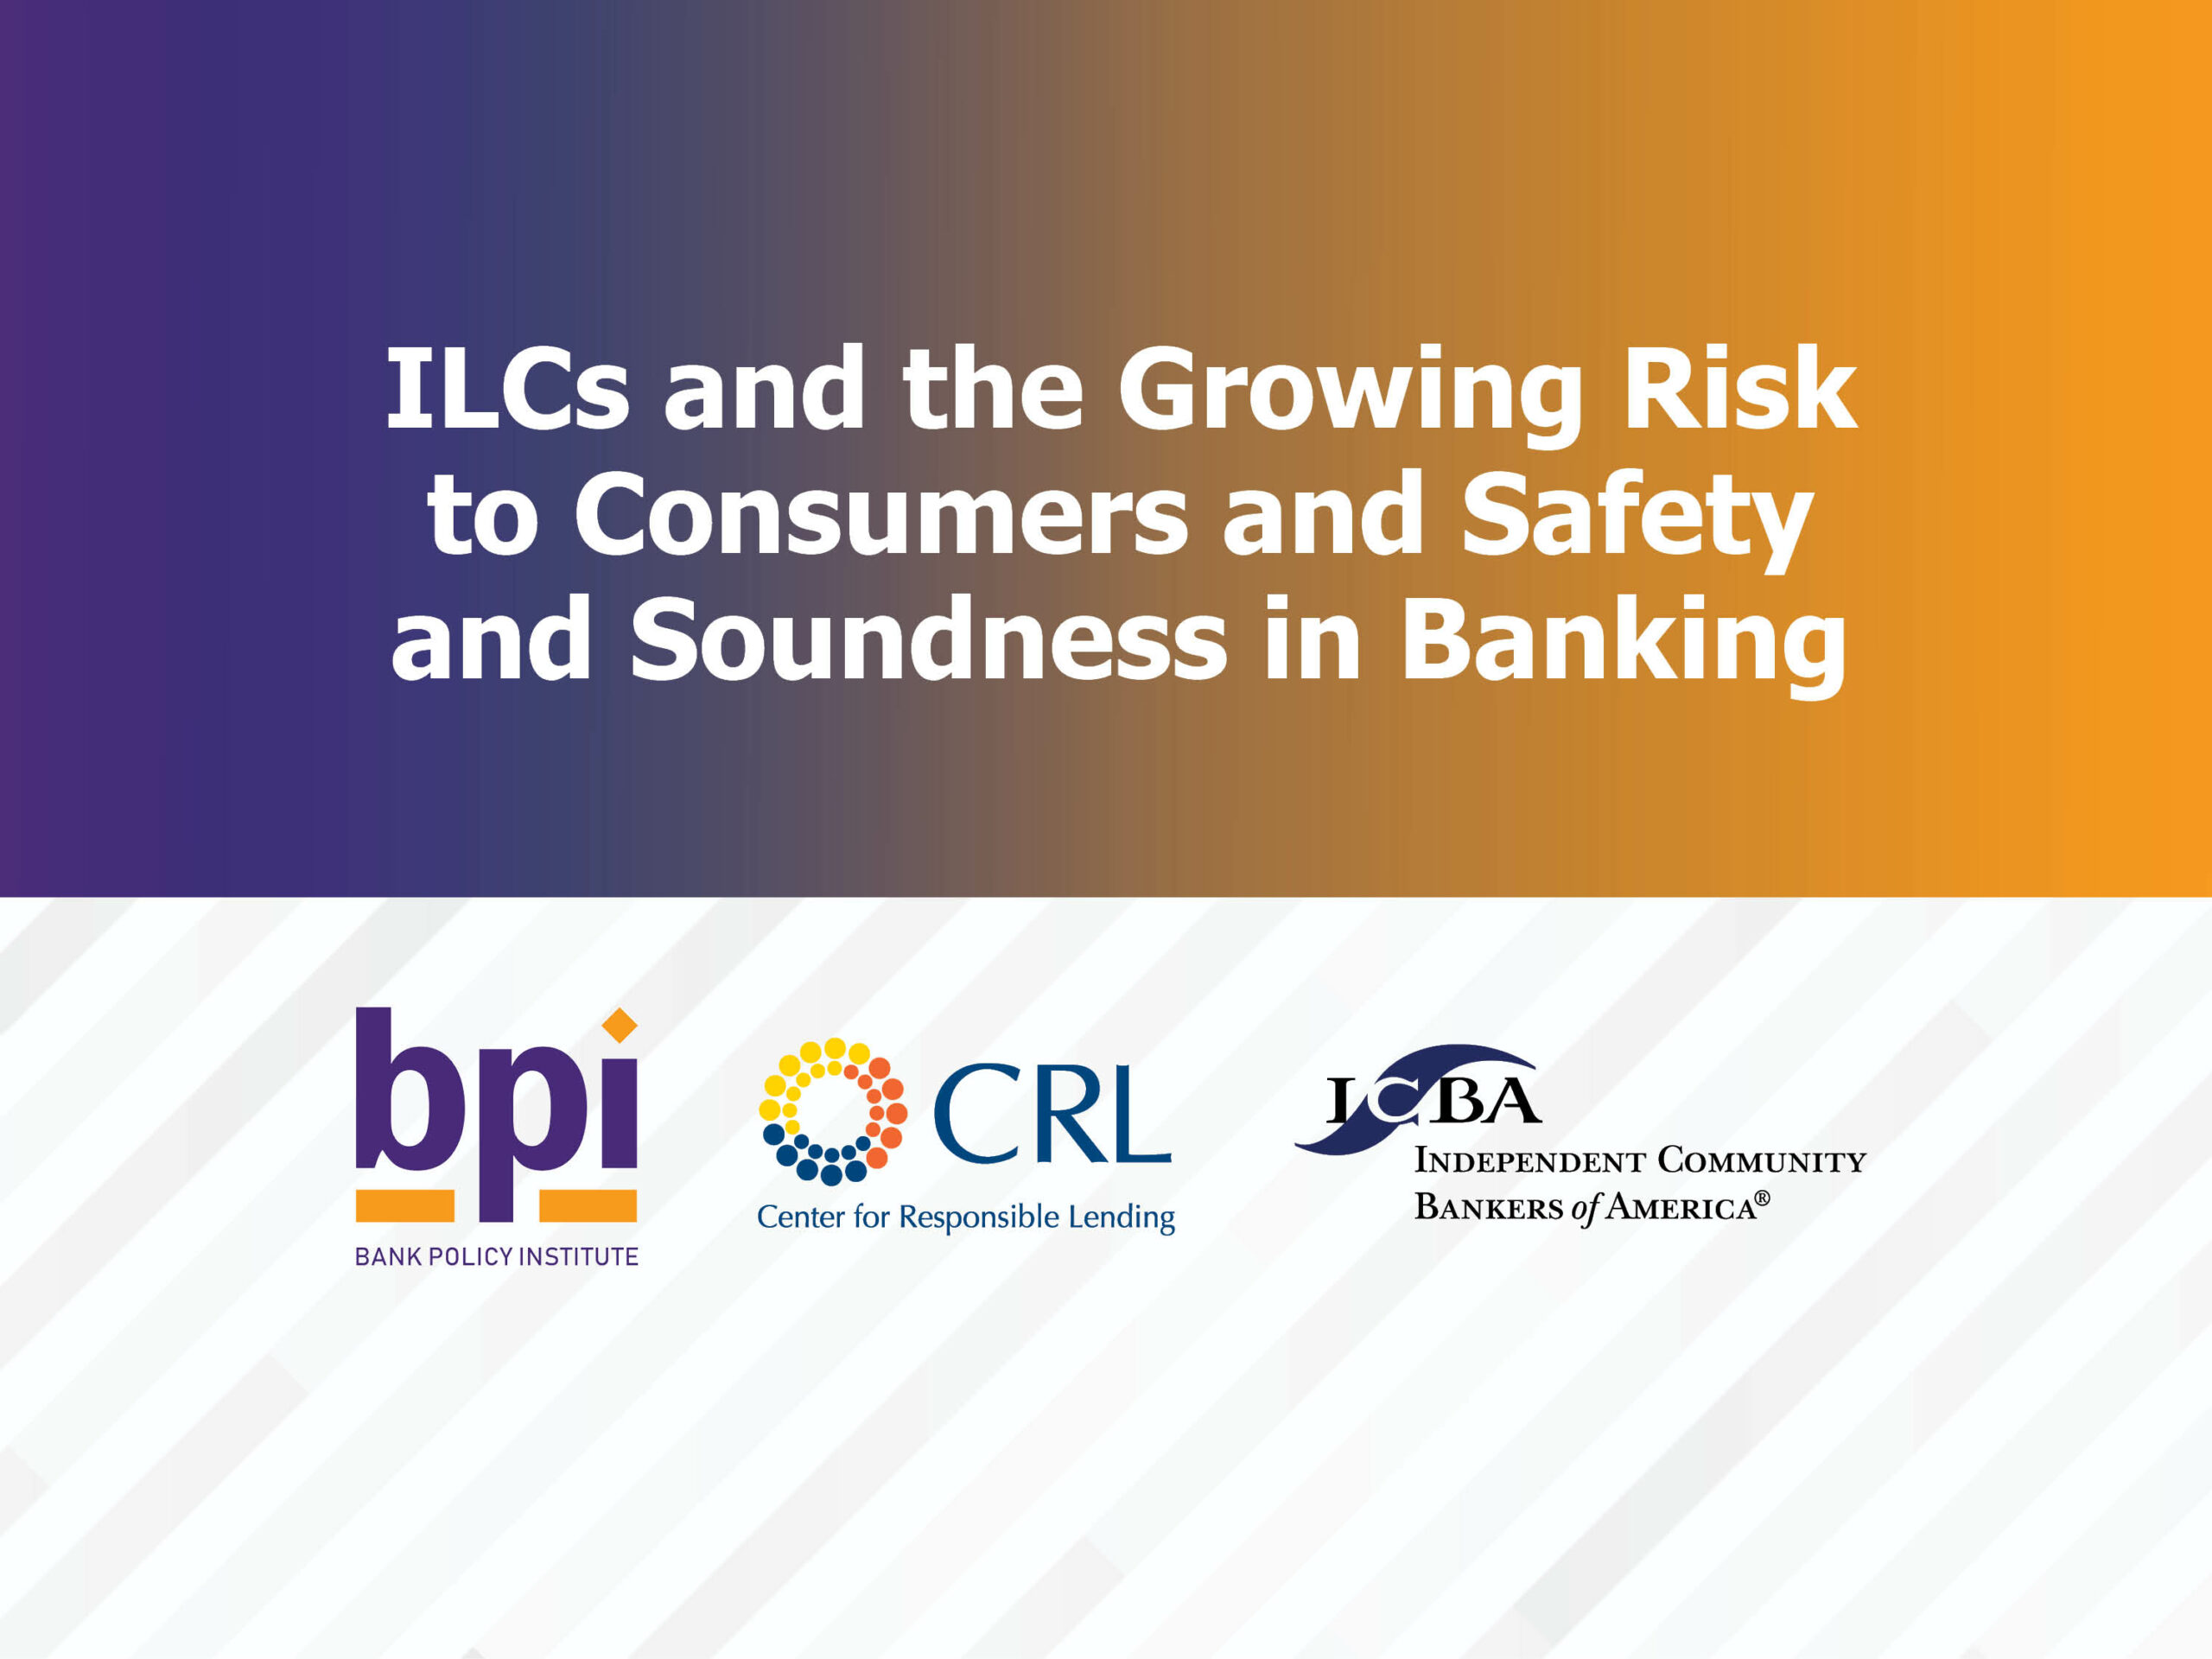 ILCs and the Growing Risk to Consumers and Safety and Soundness in Banking